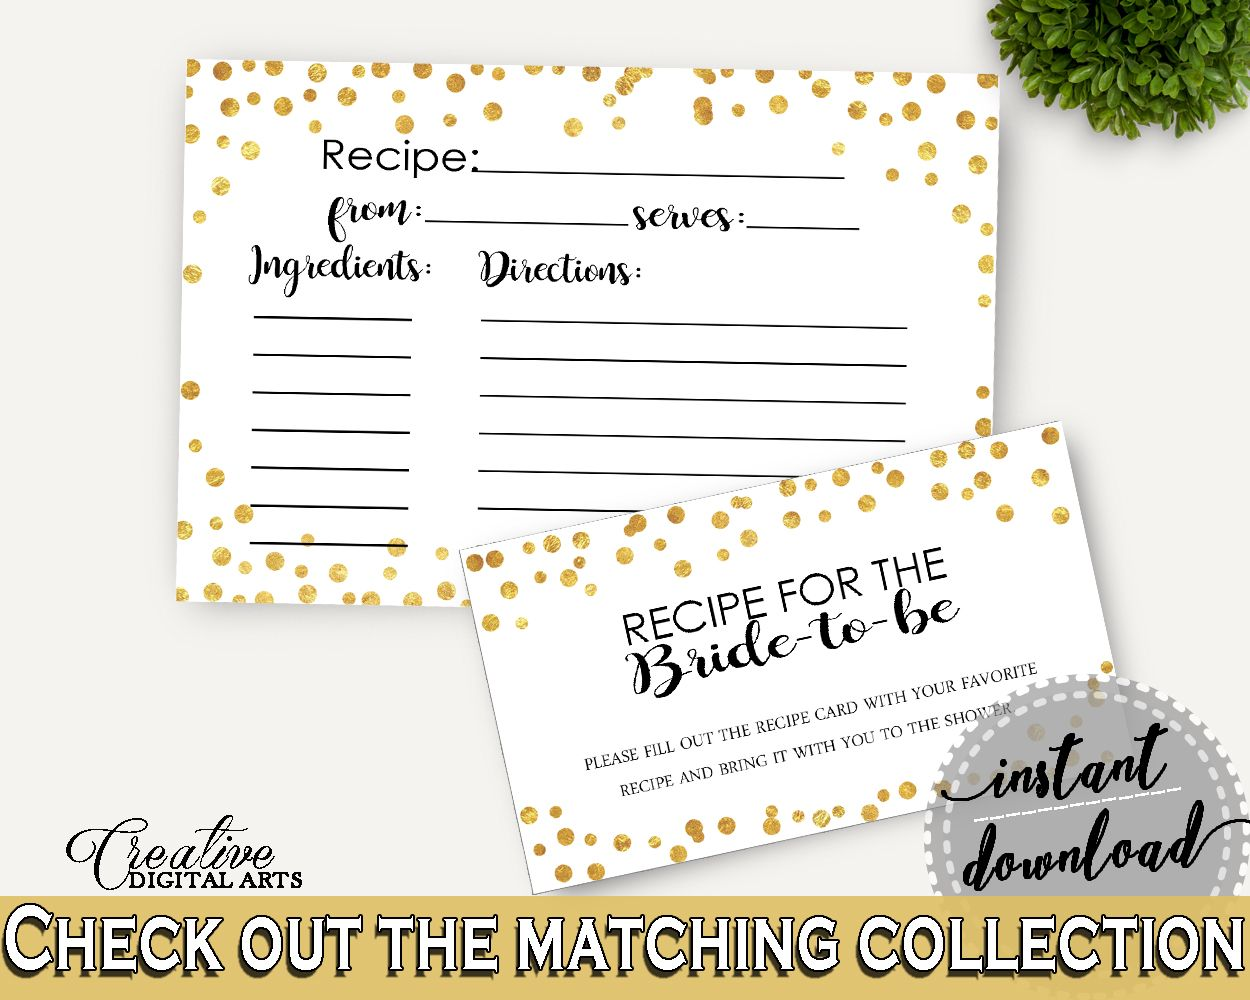 Recipe For The Bride To Be Bridal Shower Recipe For The Bride To Be Confetti Bridal Shower Recipe For The Bride To Be Bridal Shower CZXE5 #bridalshower #bride-to-be #bridetobe